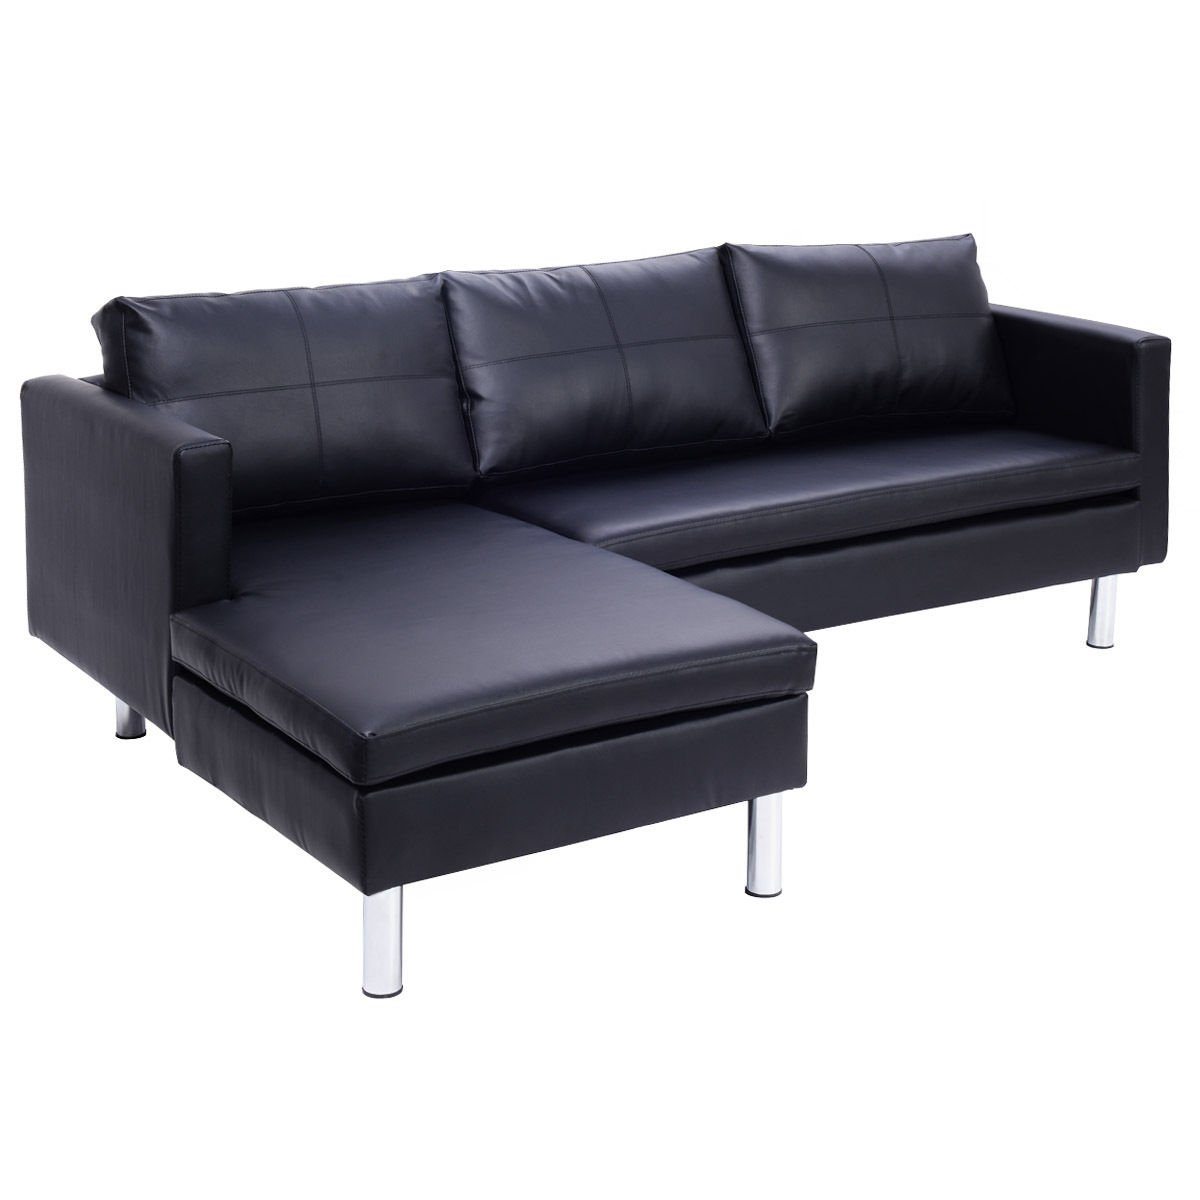 Giantex Black 3 Leather Seat Sofa and Chaise Lounge Modern Furniture Slipcover by Giantex